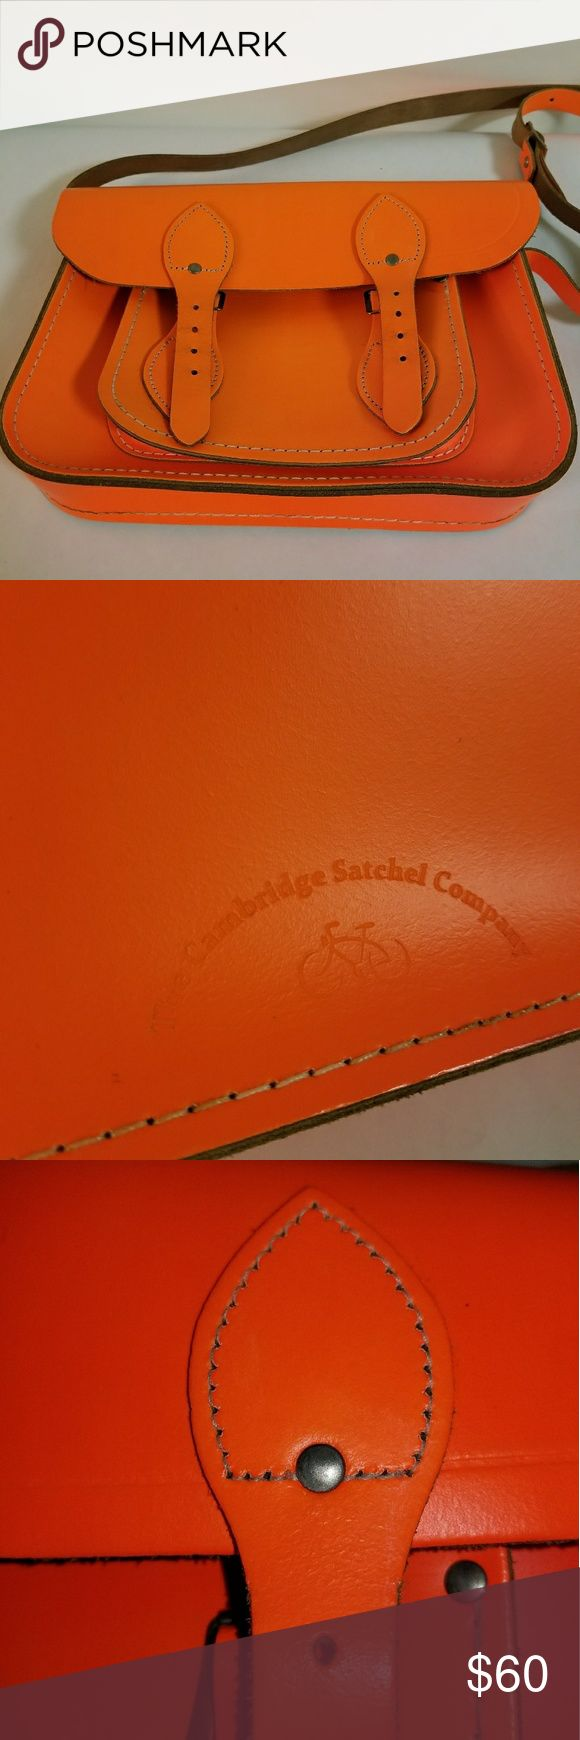 "Cambridge Satchel Company Fluro Orange Classic The Cambridge Satchel Company's Classic Leather Satchel in size small (11"") in Fluoro Orange.  Can be worn messenger style or crossbody, with an adjustable strap (approx 25"" strap drop) with buckle enclosures on the flap.  Lovingly used and in great pre-loved condition. There's a very faint stain on top of the bag (barely noticeable- see pic)  In a now discontinued, vibrant color called ""Fluoro Orange"", its very fashionable and sold out…"